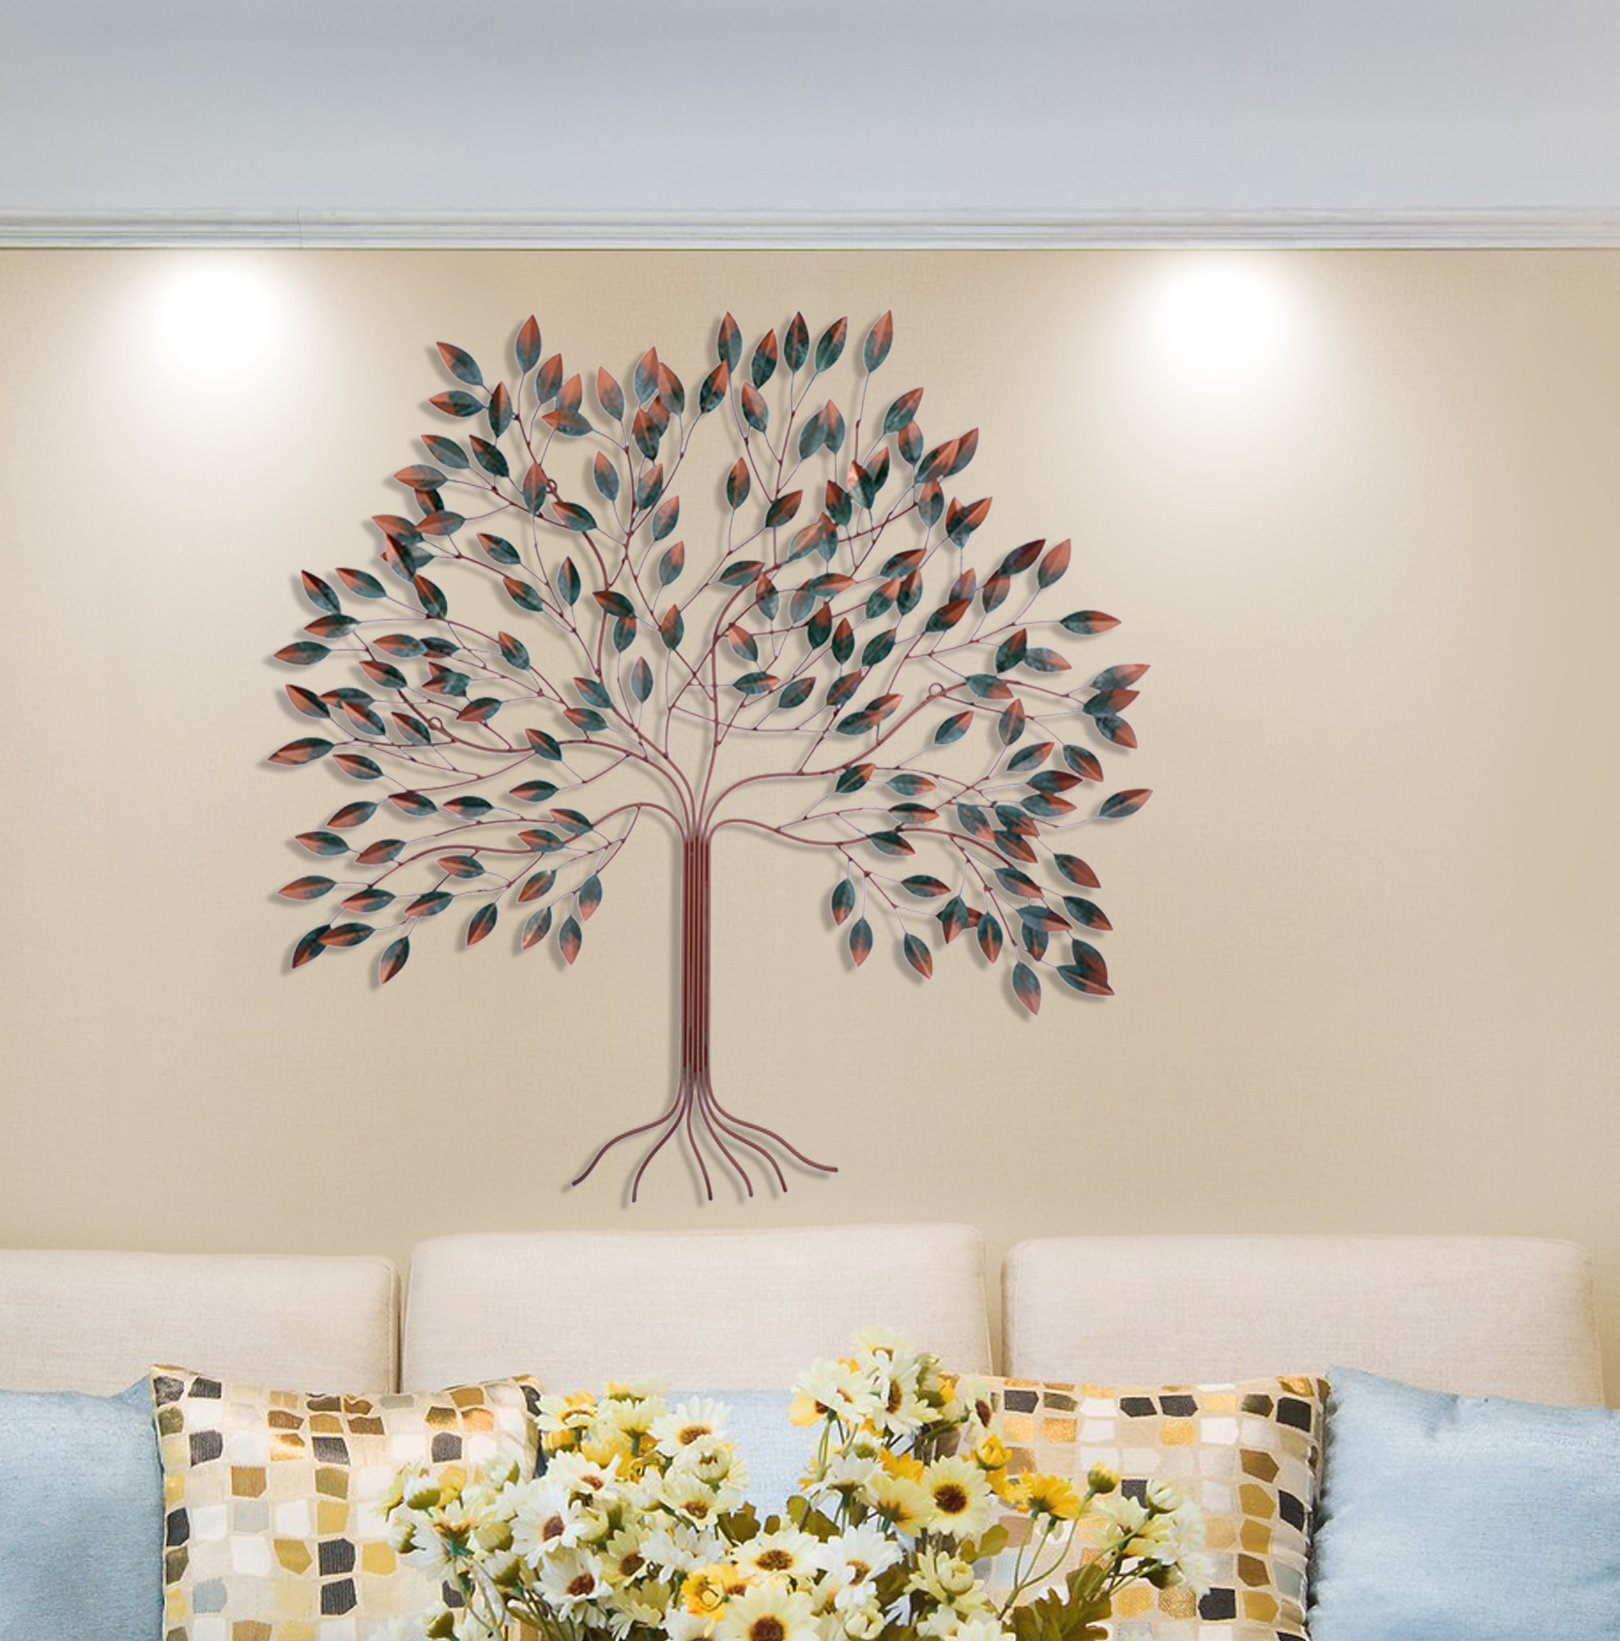 2019 Tree Of Life Wall Decor Pertaining To Peterson Housewares Inc. Tree Of Life Wall Décor & Reviews (Gallery 3 of 20)